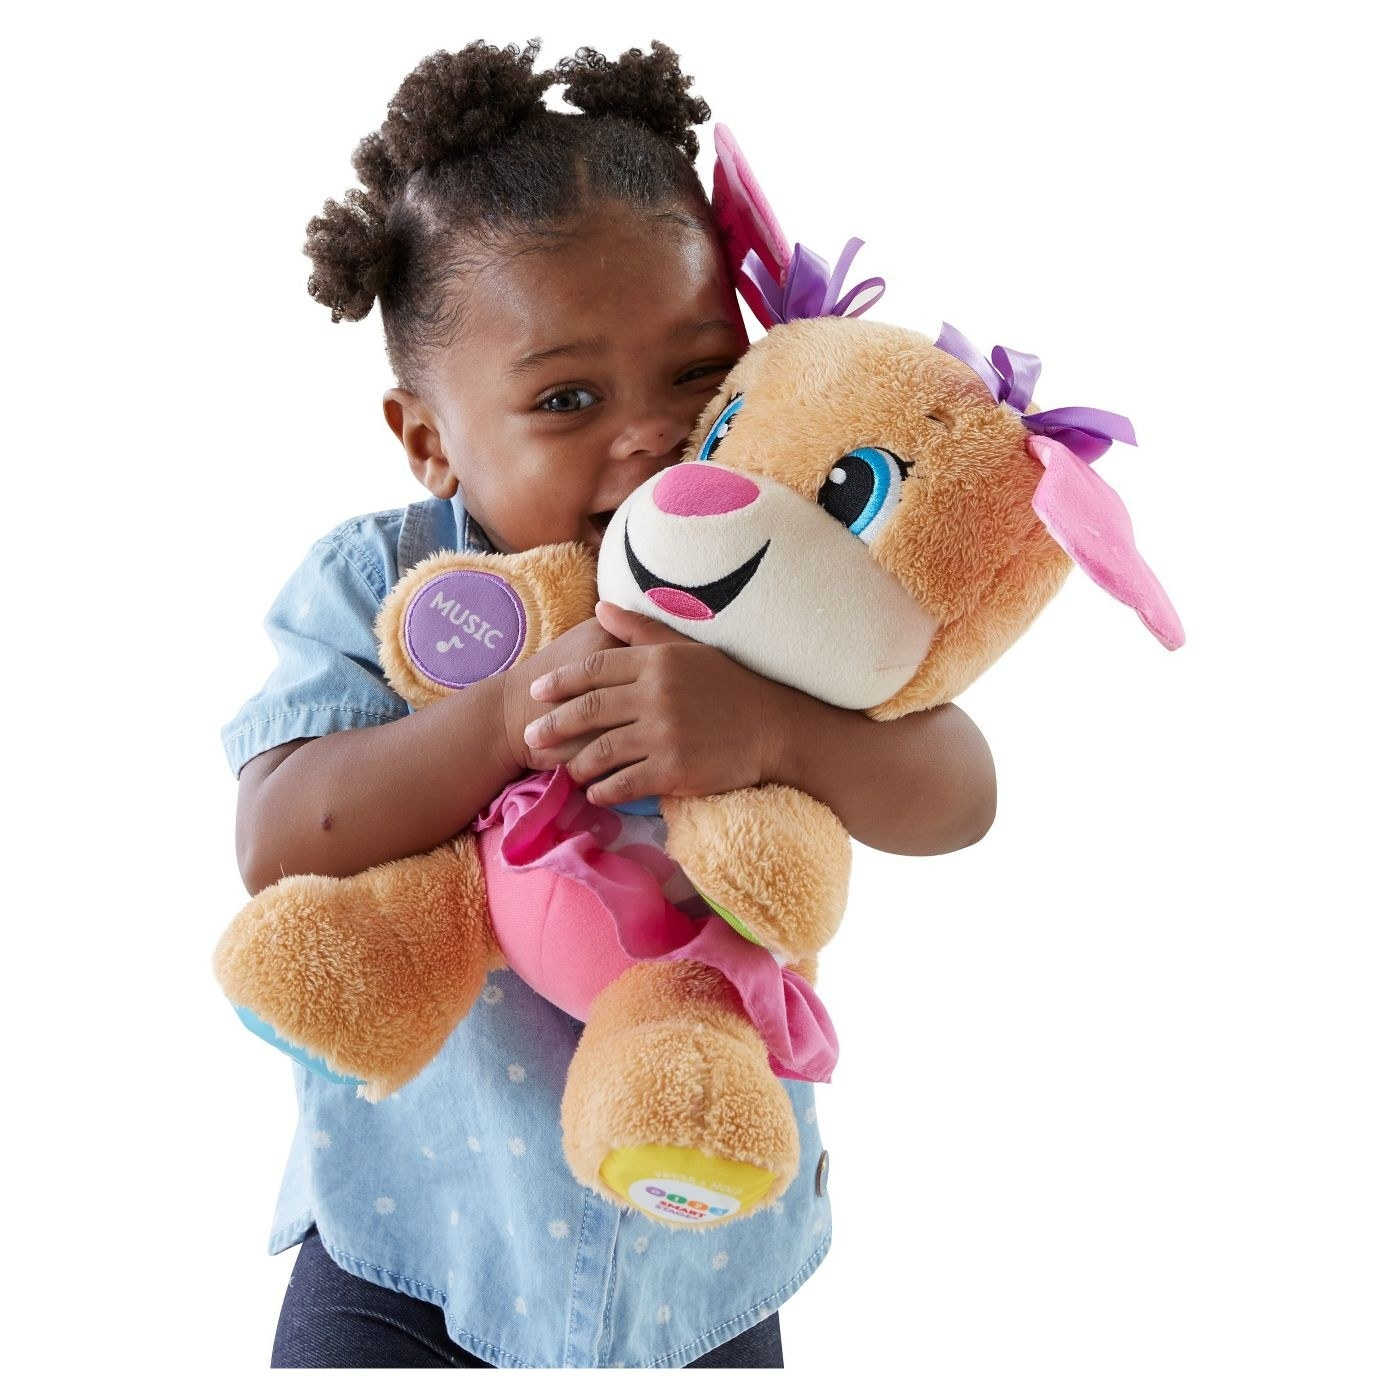 A child hugging the toy